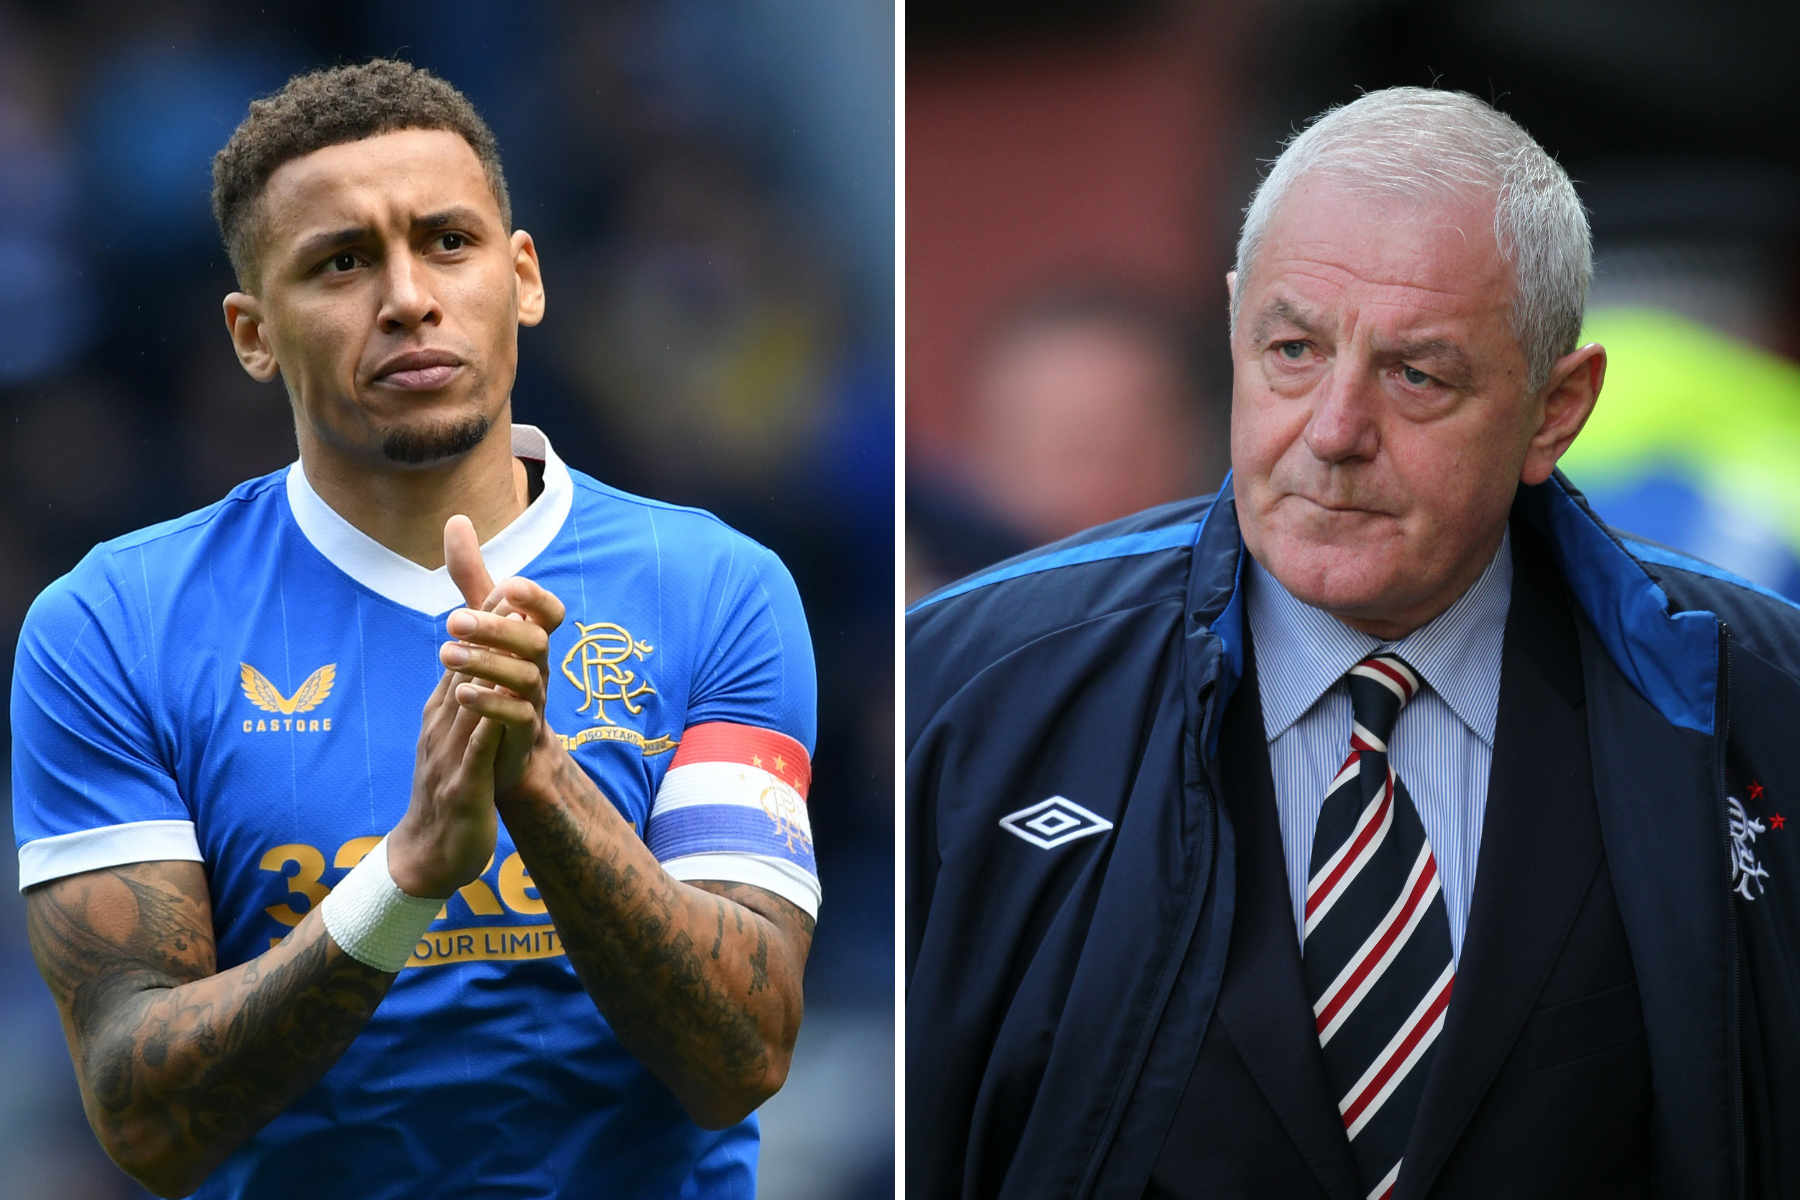 Rangers captain James Tavernier pays tribute to Walter Smith ahead of Aberdeen clash